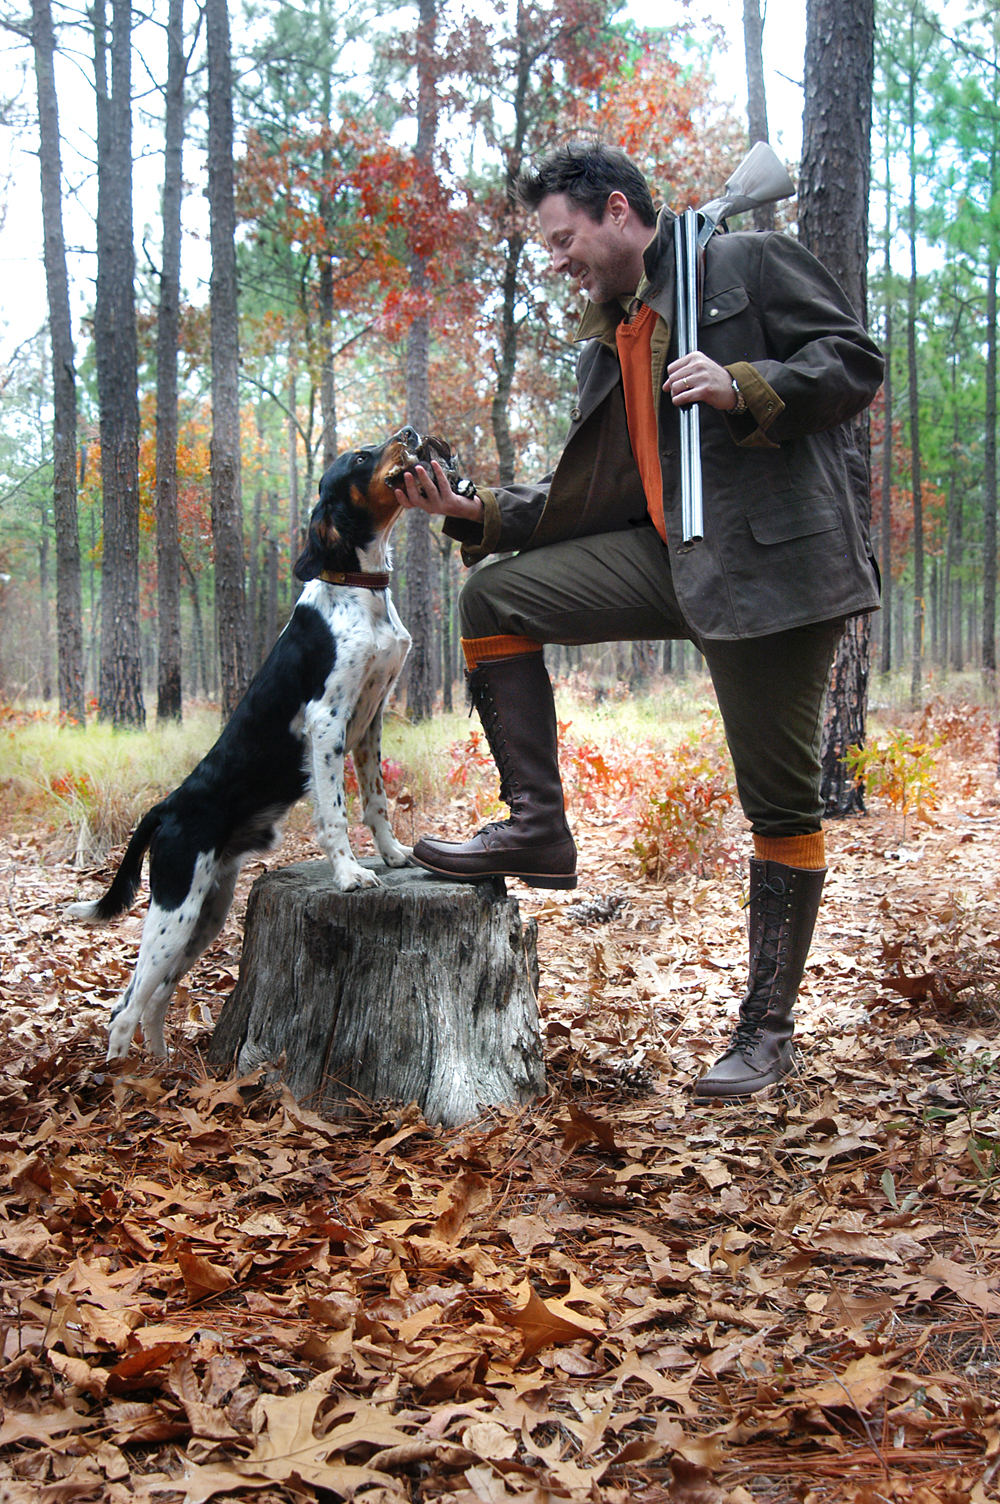 Here I am with Handsome Dutch and my Russell Gentleman Birdshooters